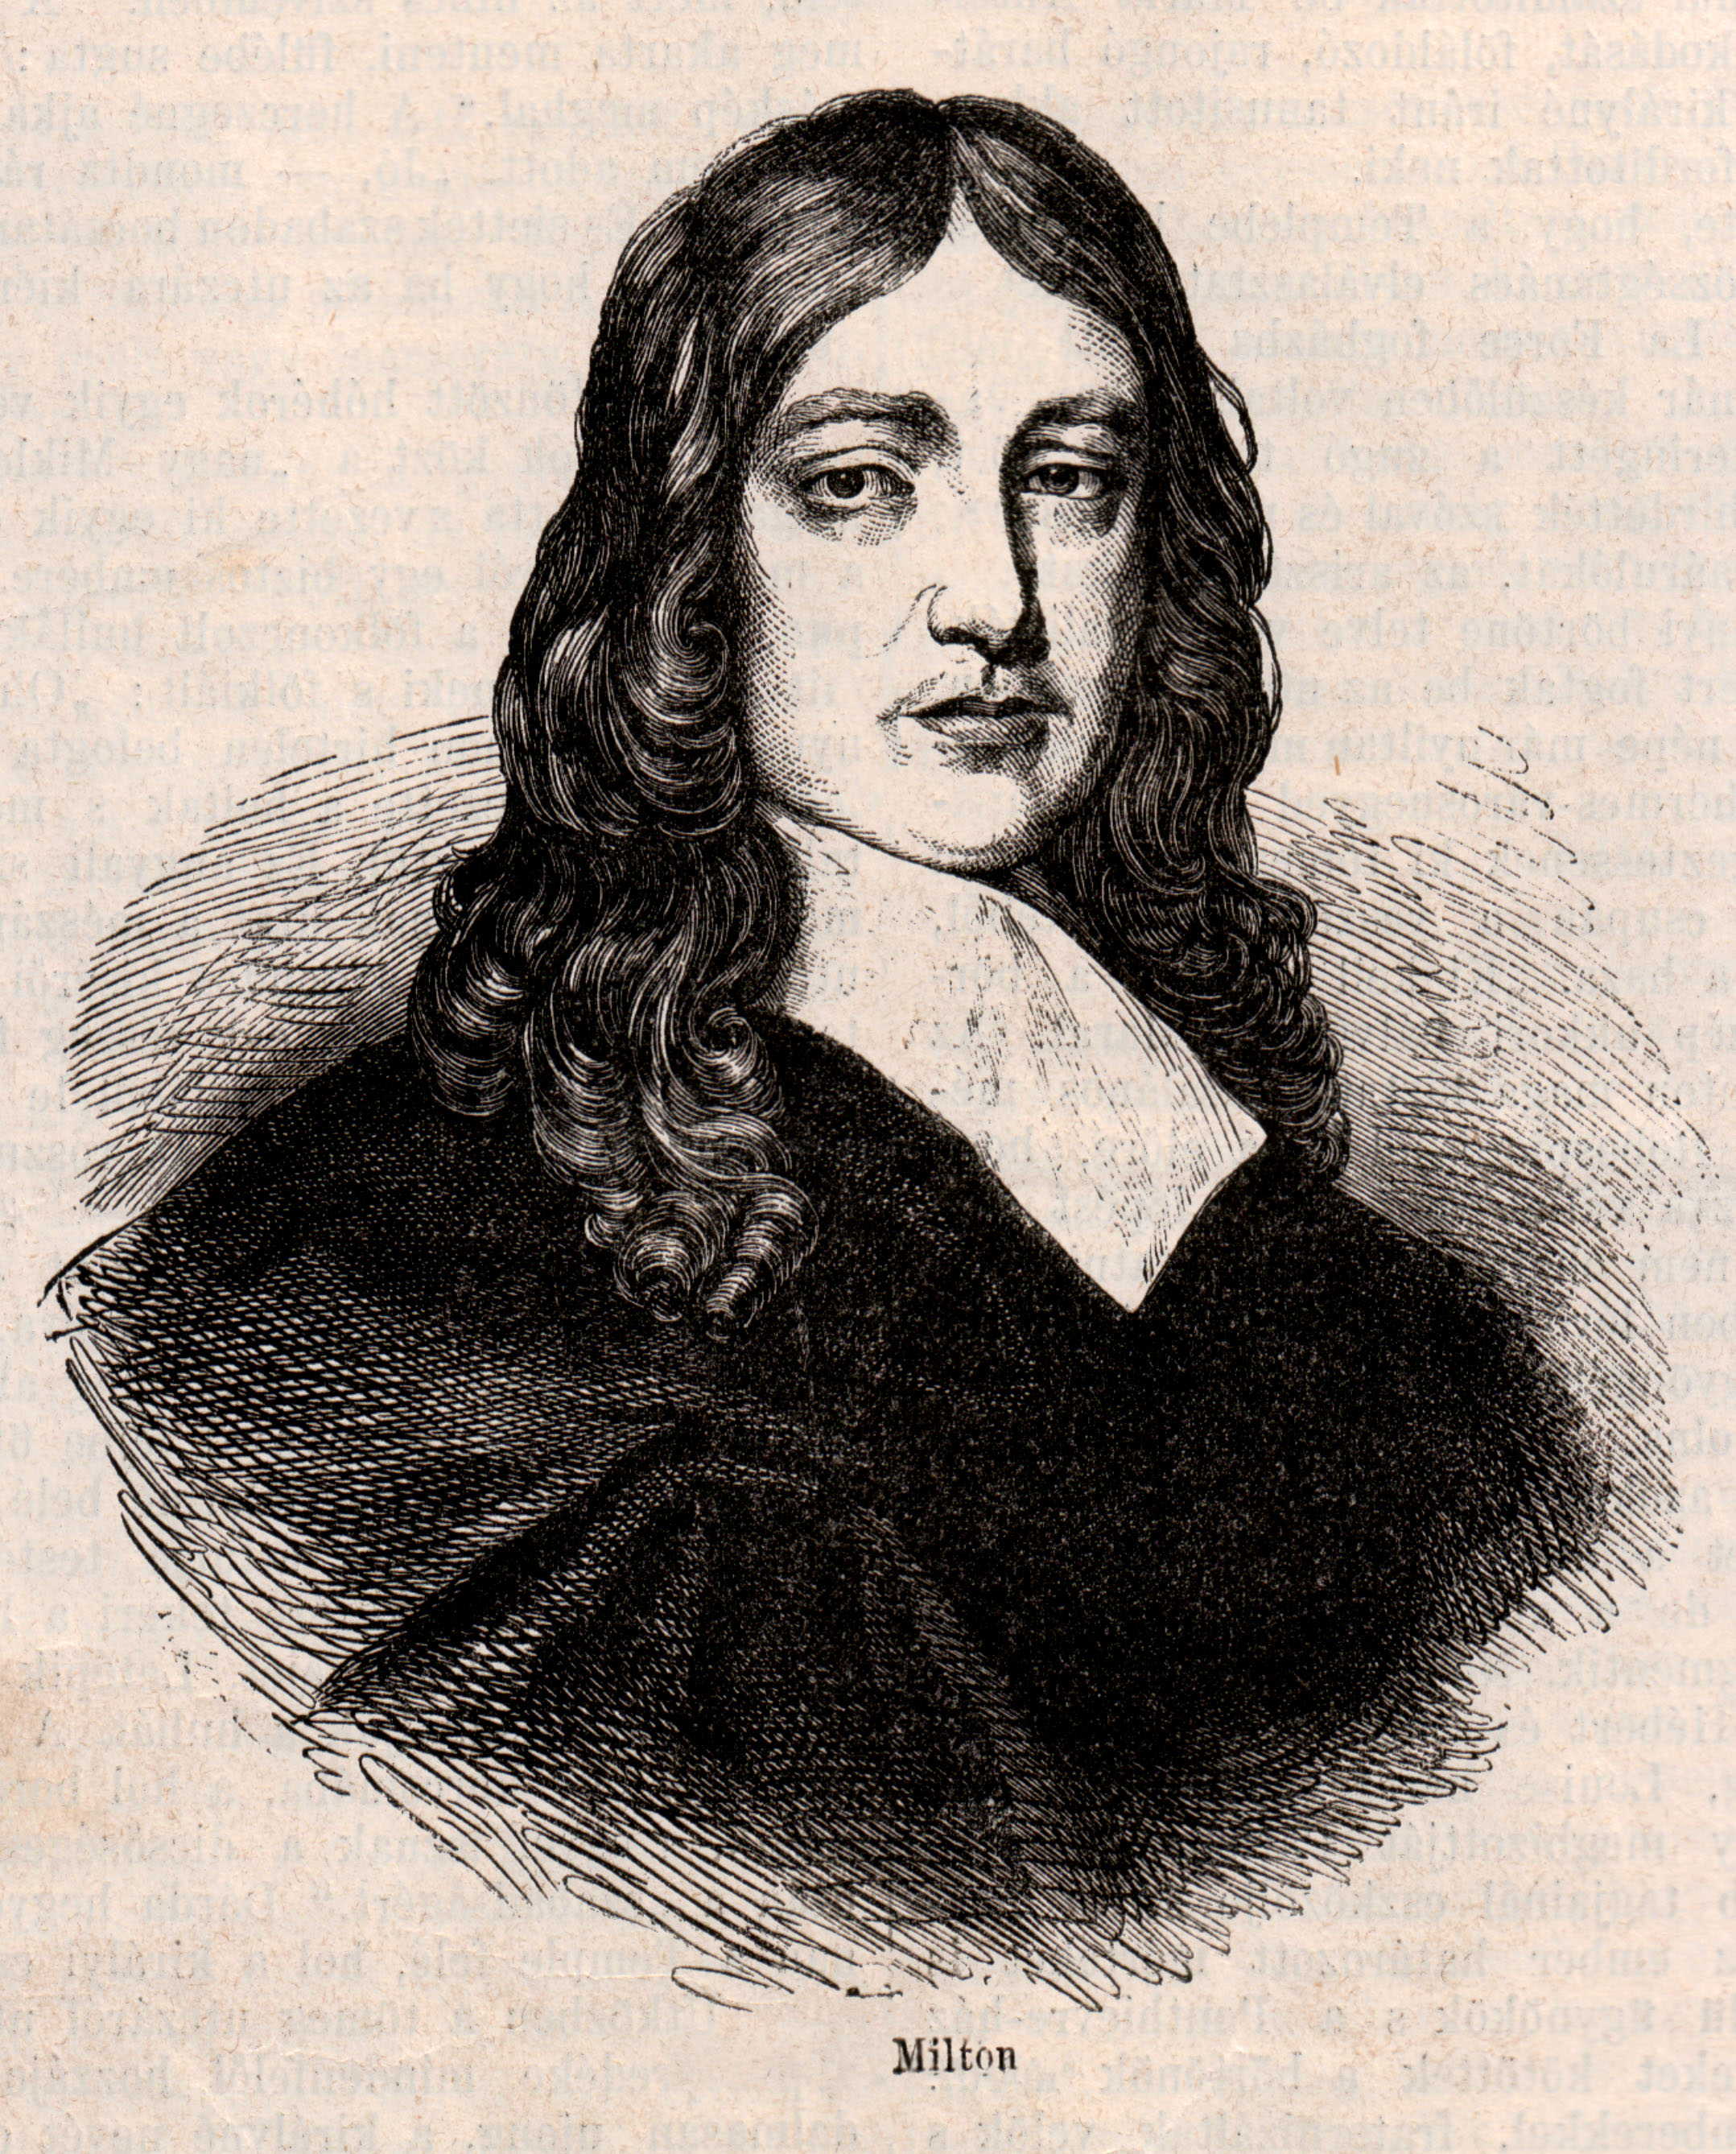 an overview of john miltons reflections John milton, english poet, pamphleteer, and historian, is best known for writing paradise lost, widely regarded as the greatest epic poem in english john milton is best known for paradise lost .